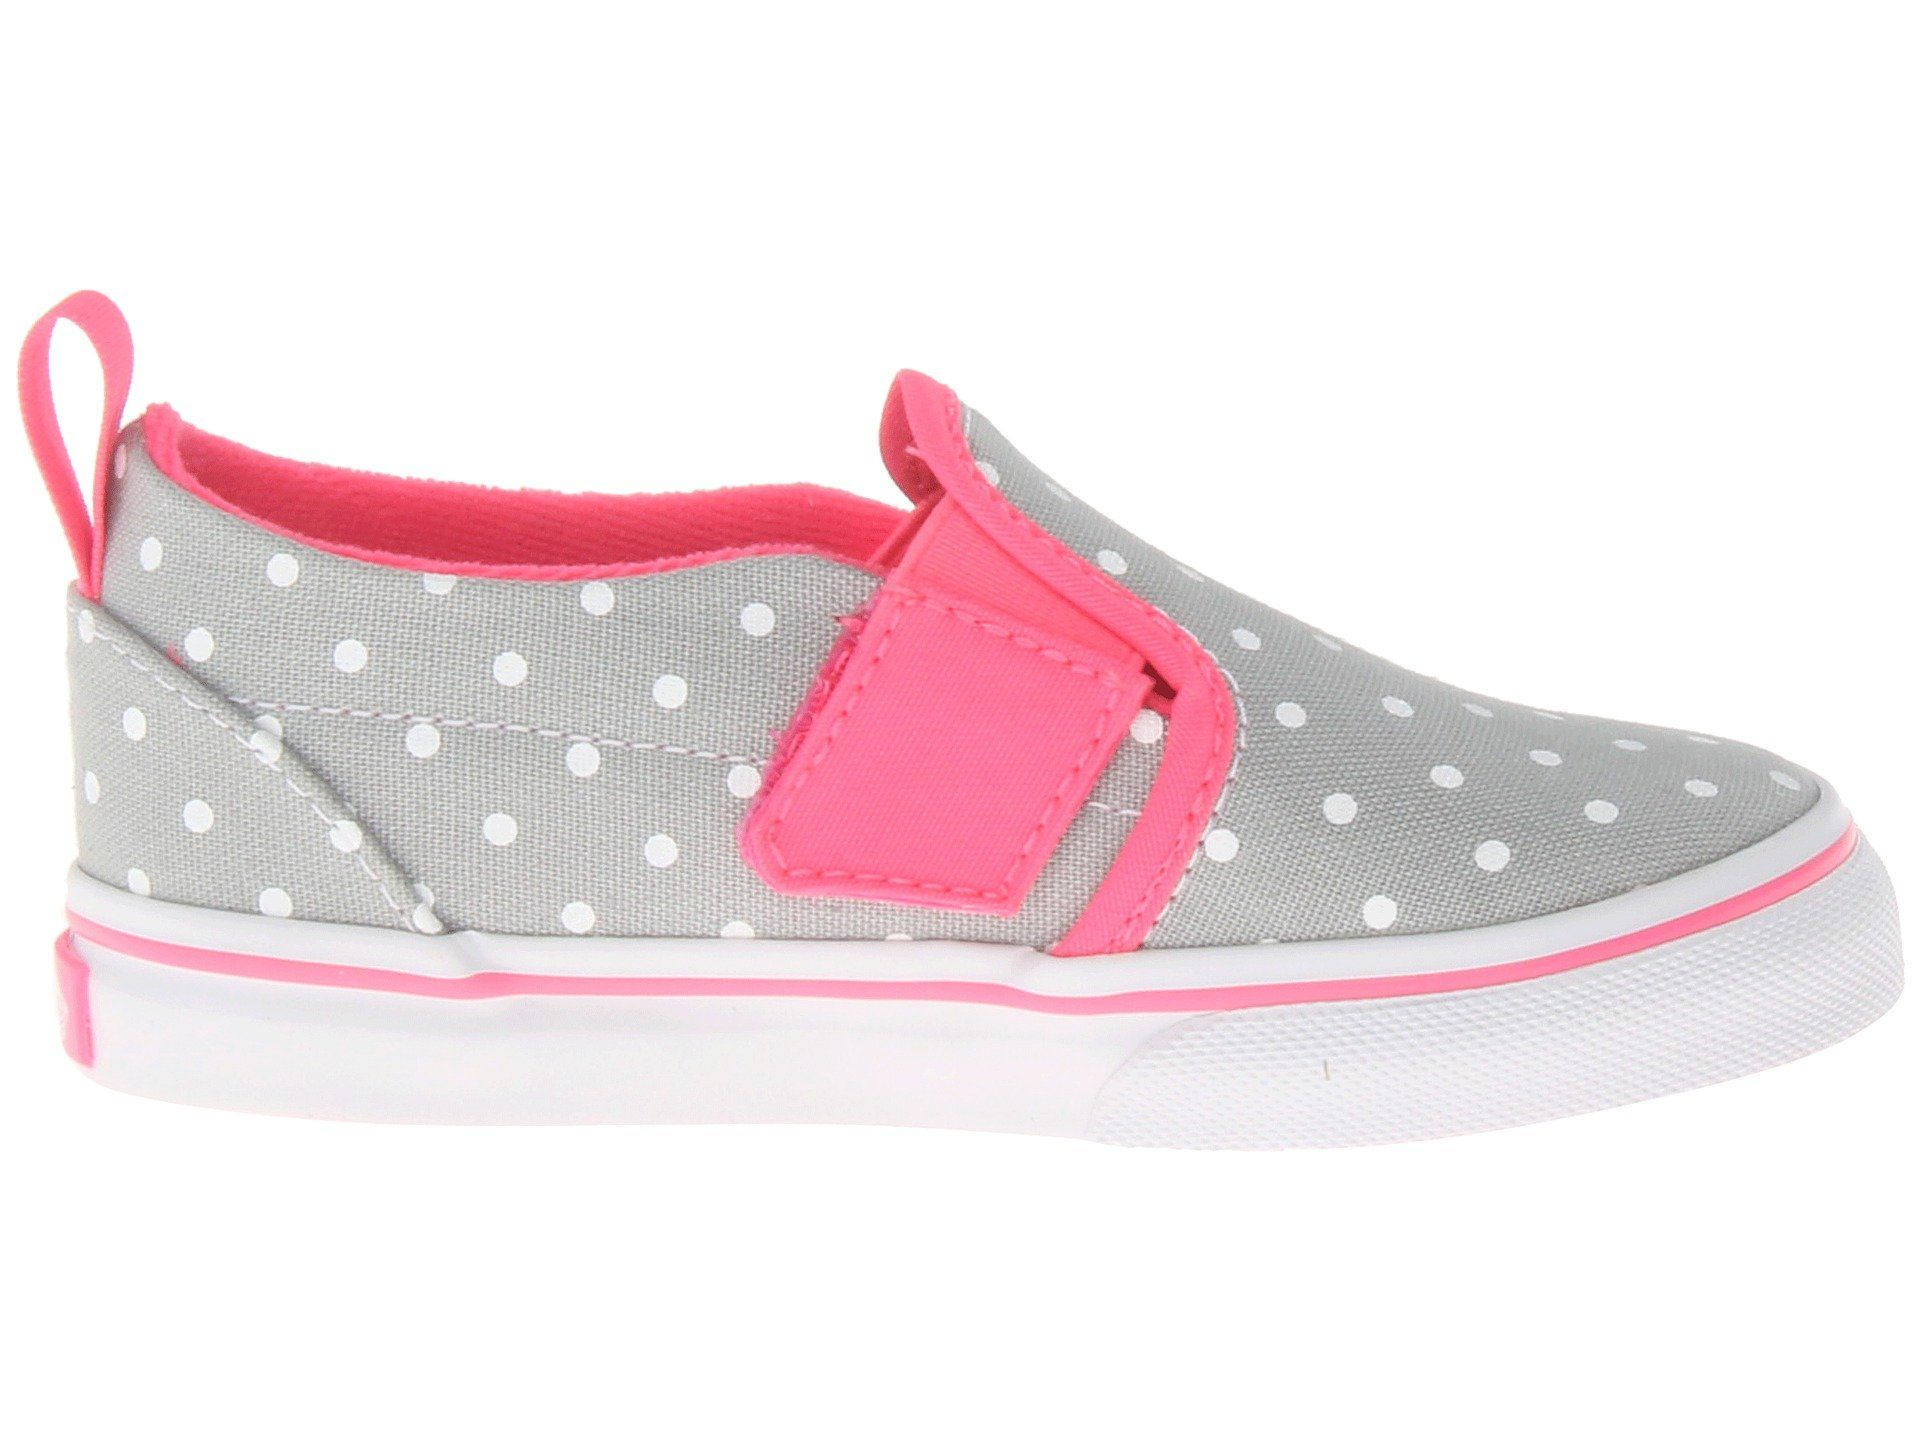 5bc5d2d9eb2e5 Amazon.com: Vans Baby Girls' Slip-On V (Toddler) - High Rise/Neon ...